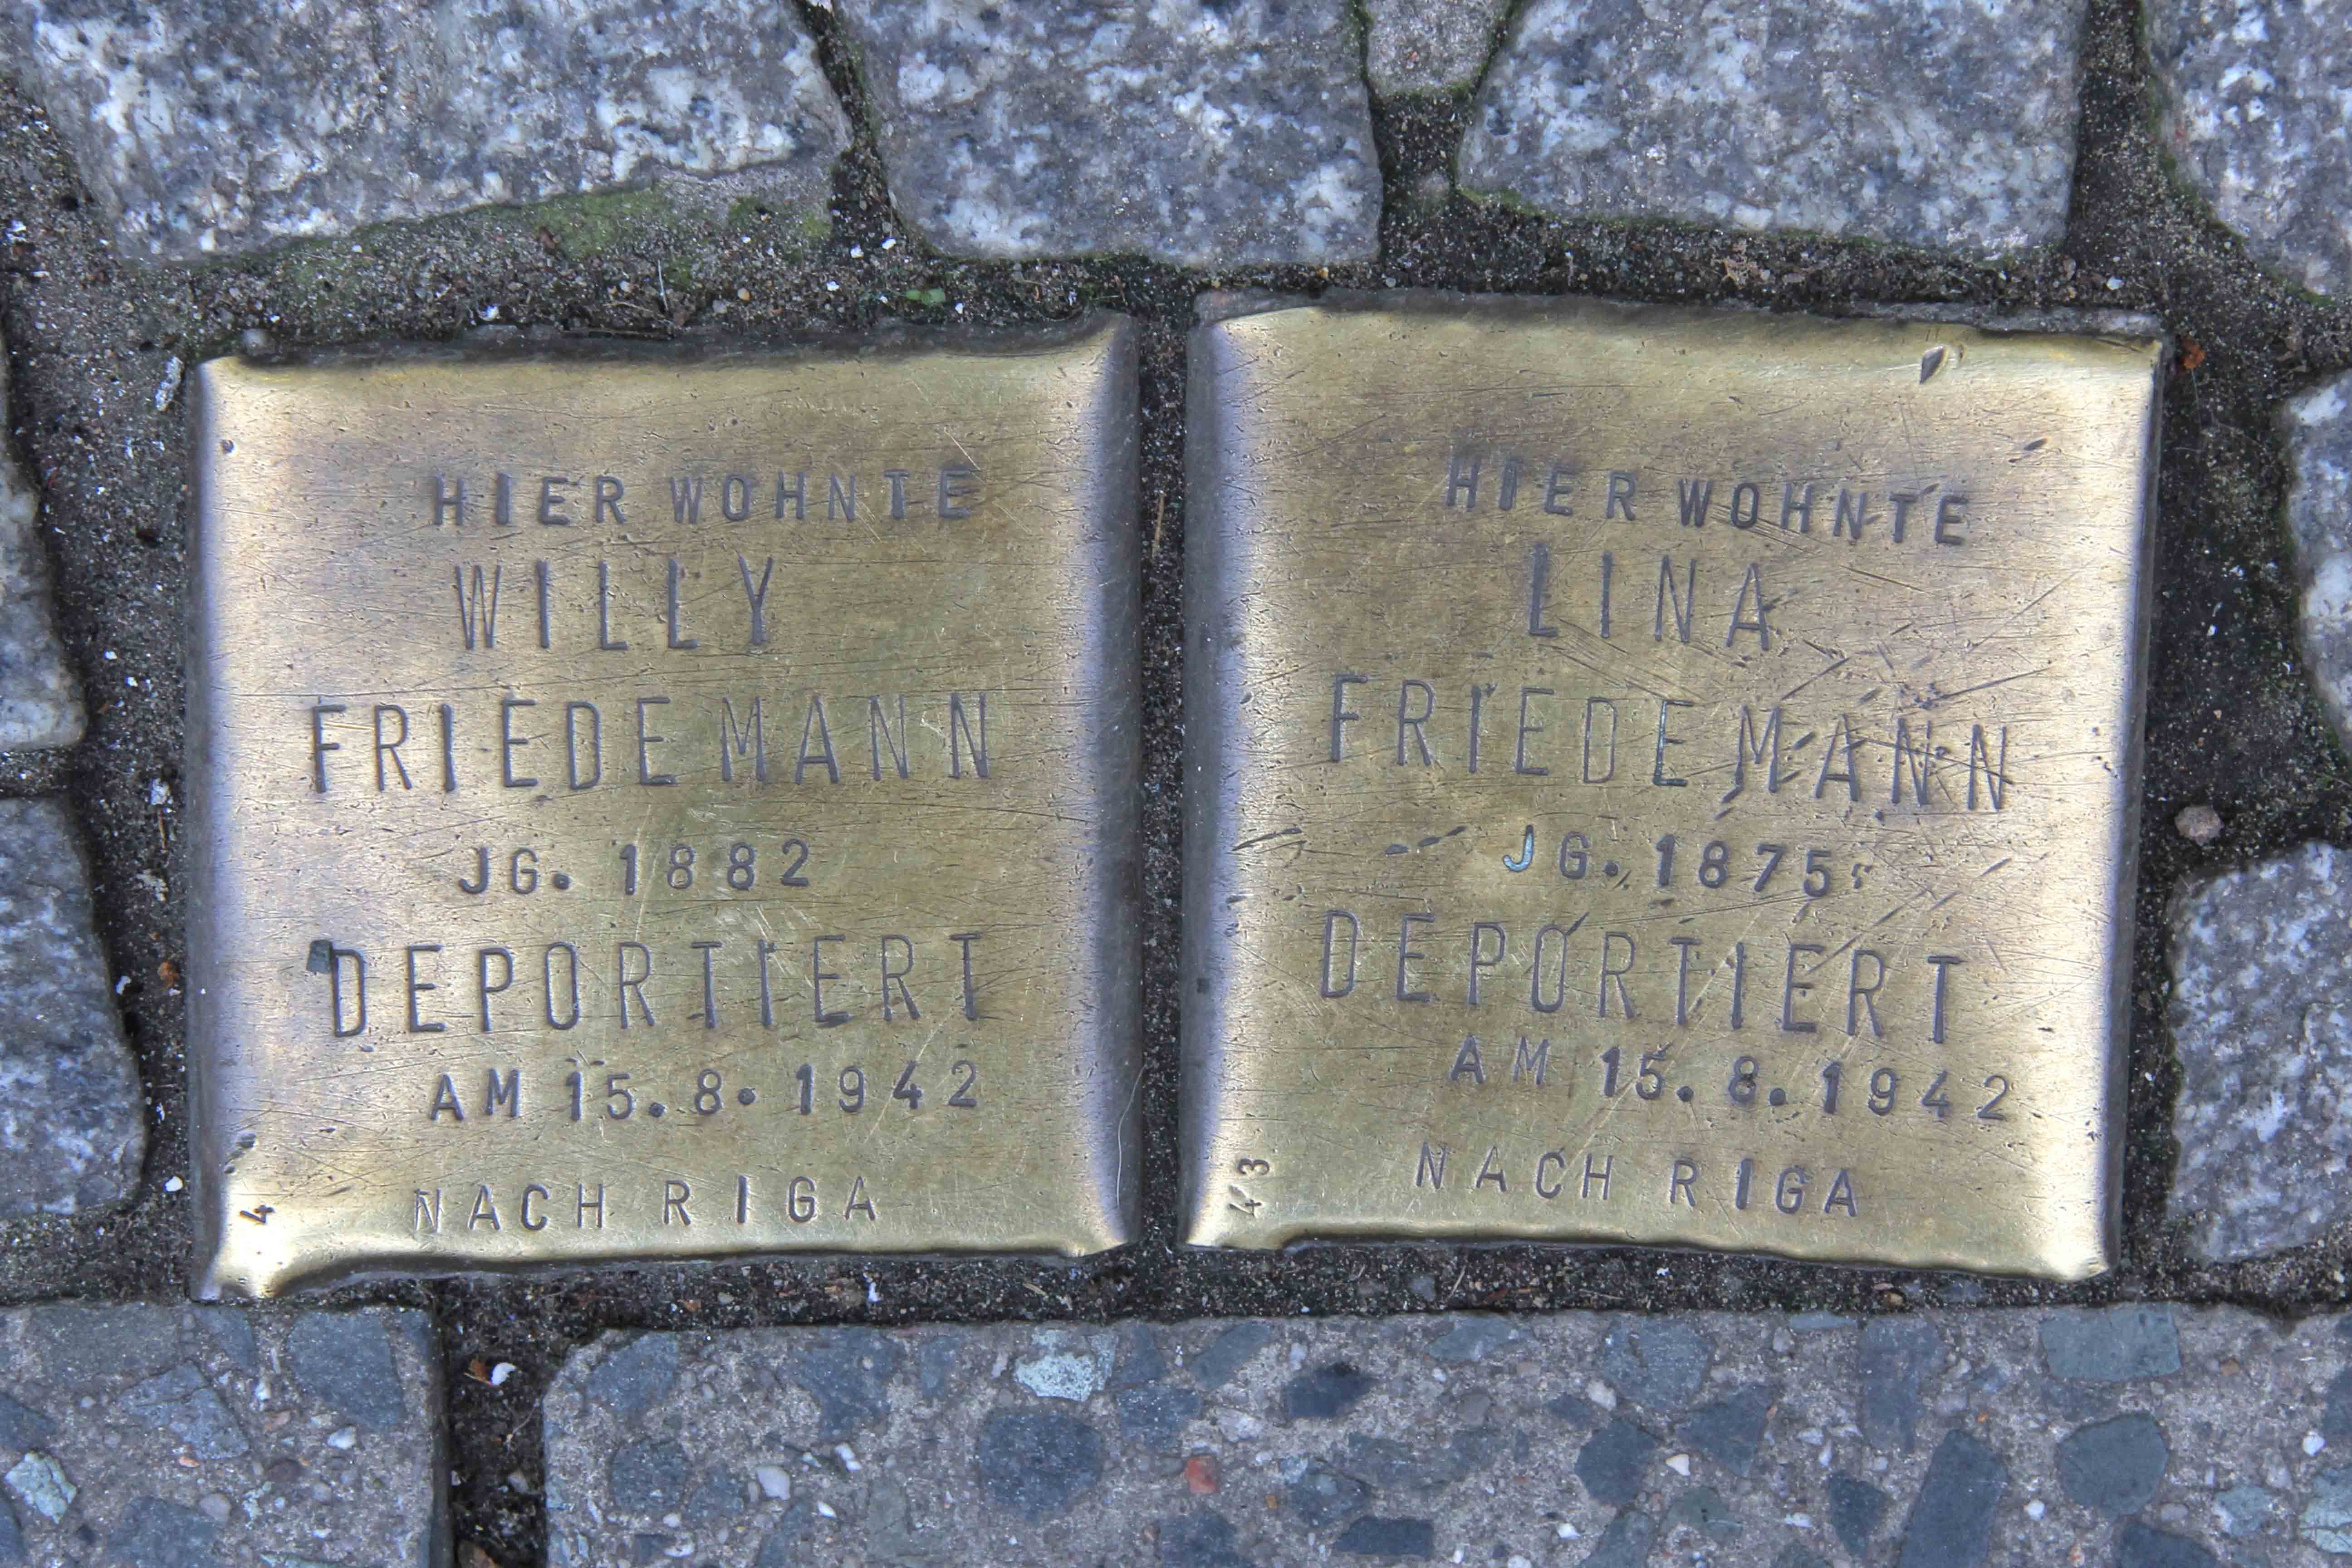 Stolpersteine Berlin 151: In memory of Willy Friedmann and Lina Friedmann (outside Apotheke am Moritzplatz at Oranienstrasse 158)